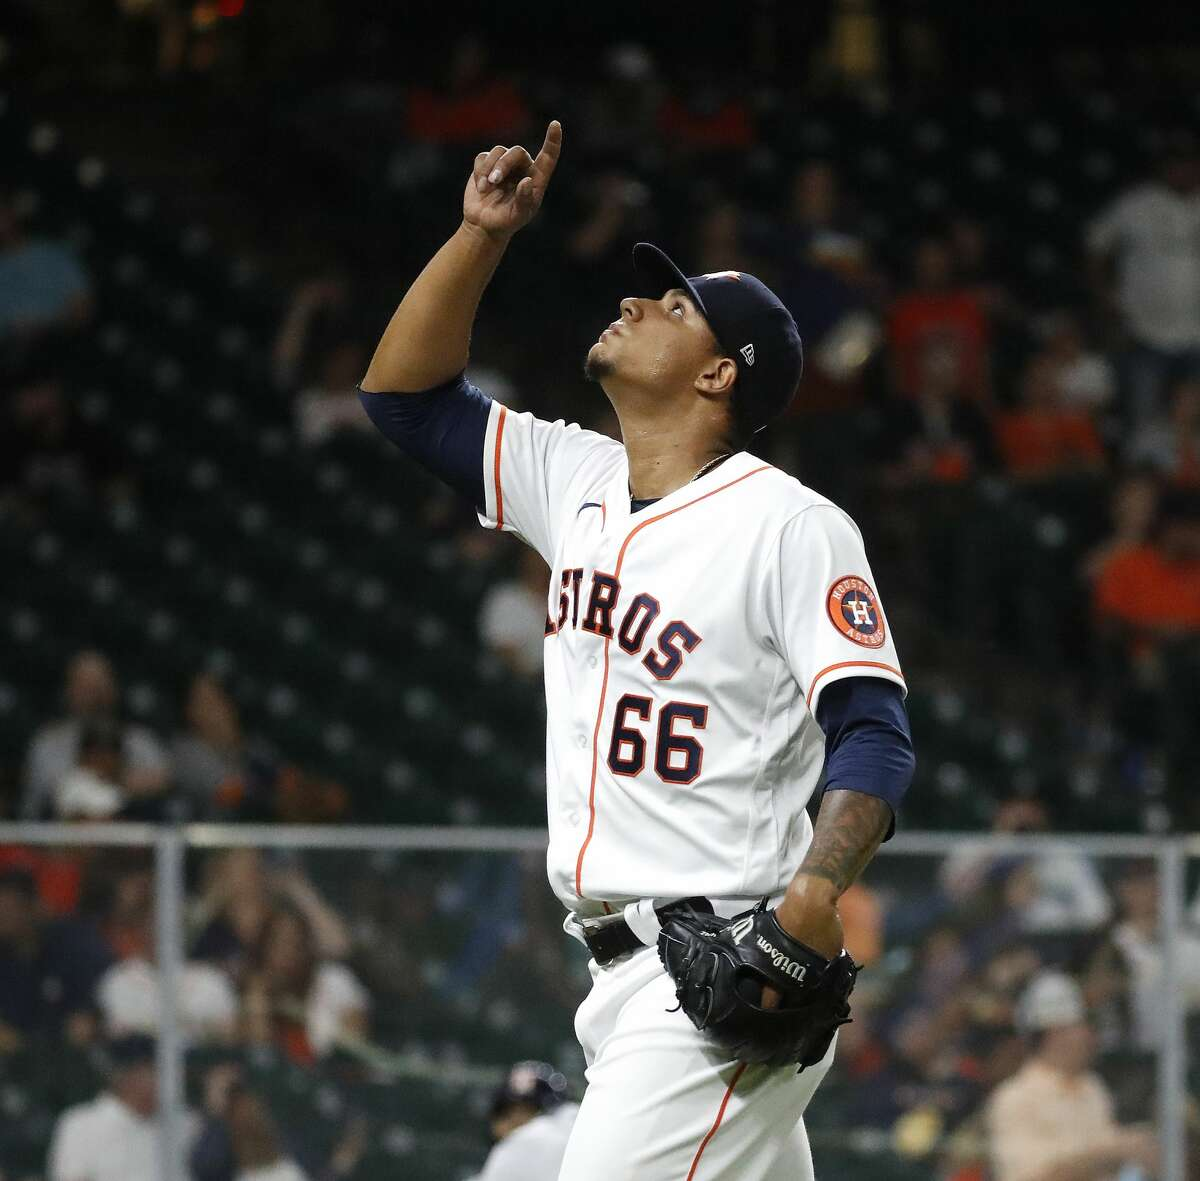 Houston Astros relief pitcher Bryan Abreu (66) reacts after striking out Seattle Mariners J.P. Crawford during the seventh inning of an MLB baseball game at Minute Maid Park, Monday, April 26, 2021, in Houston.